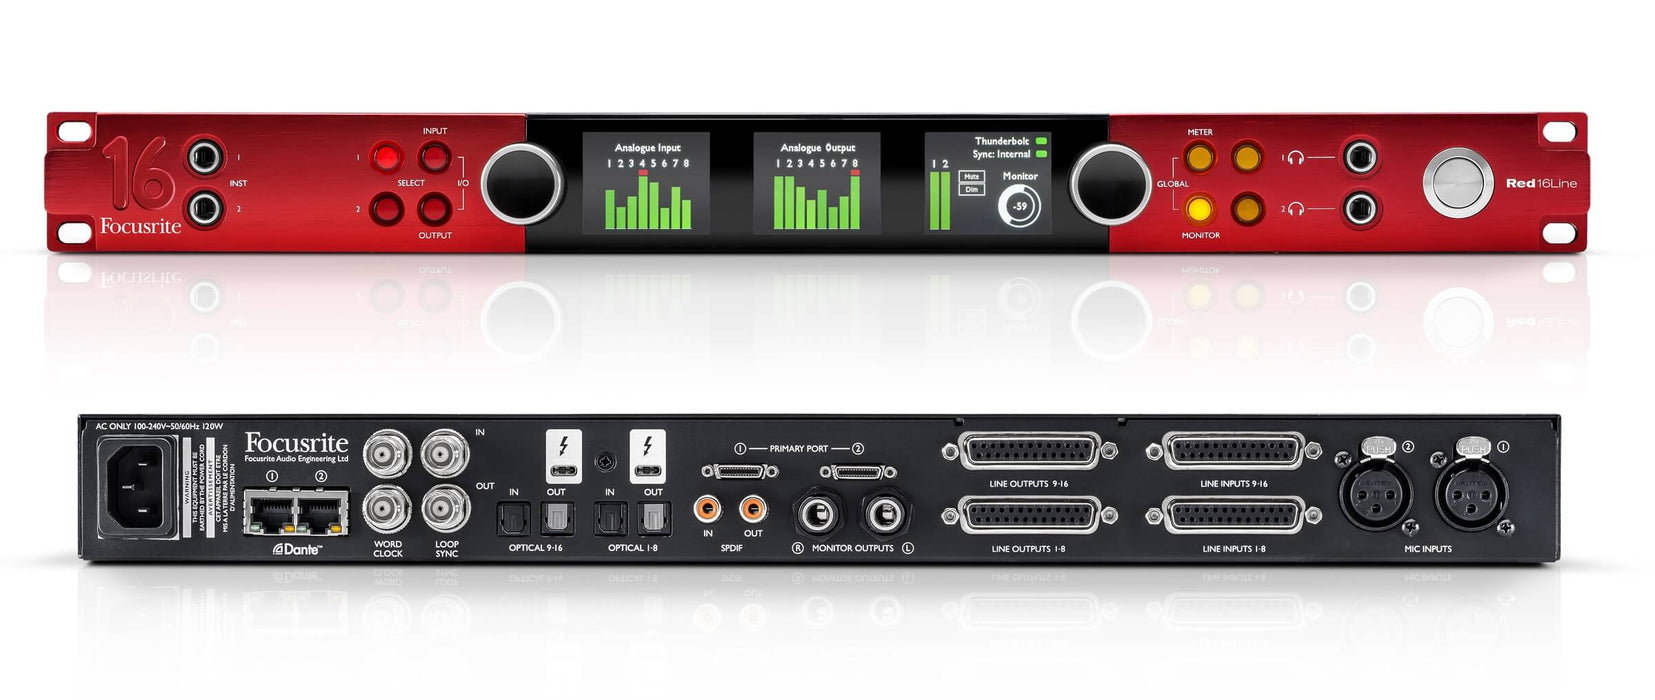 RED 16LINE - INTERFAZ DANTE 64x64 COMPATIBLE CON PRO TOOLS | HD Y THUNDERBOLT 3